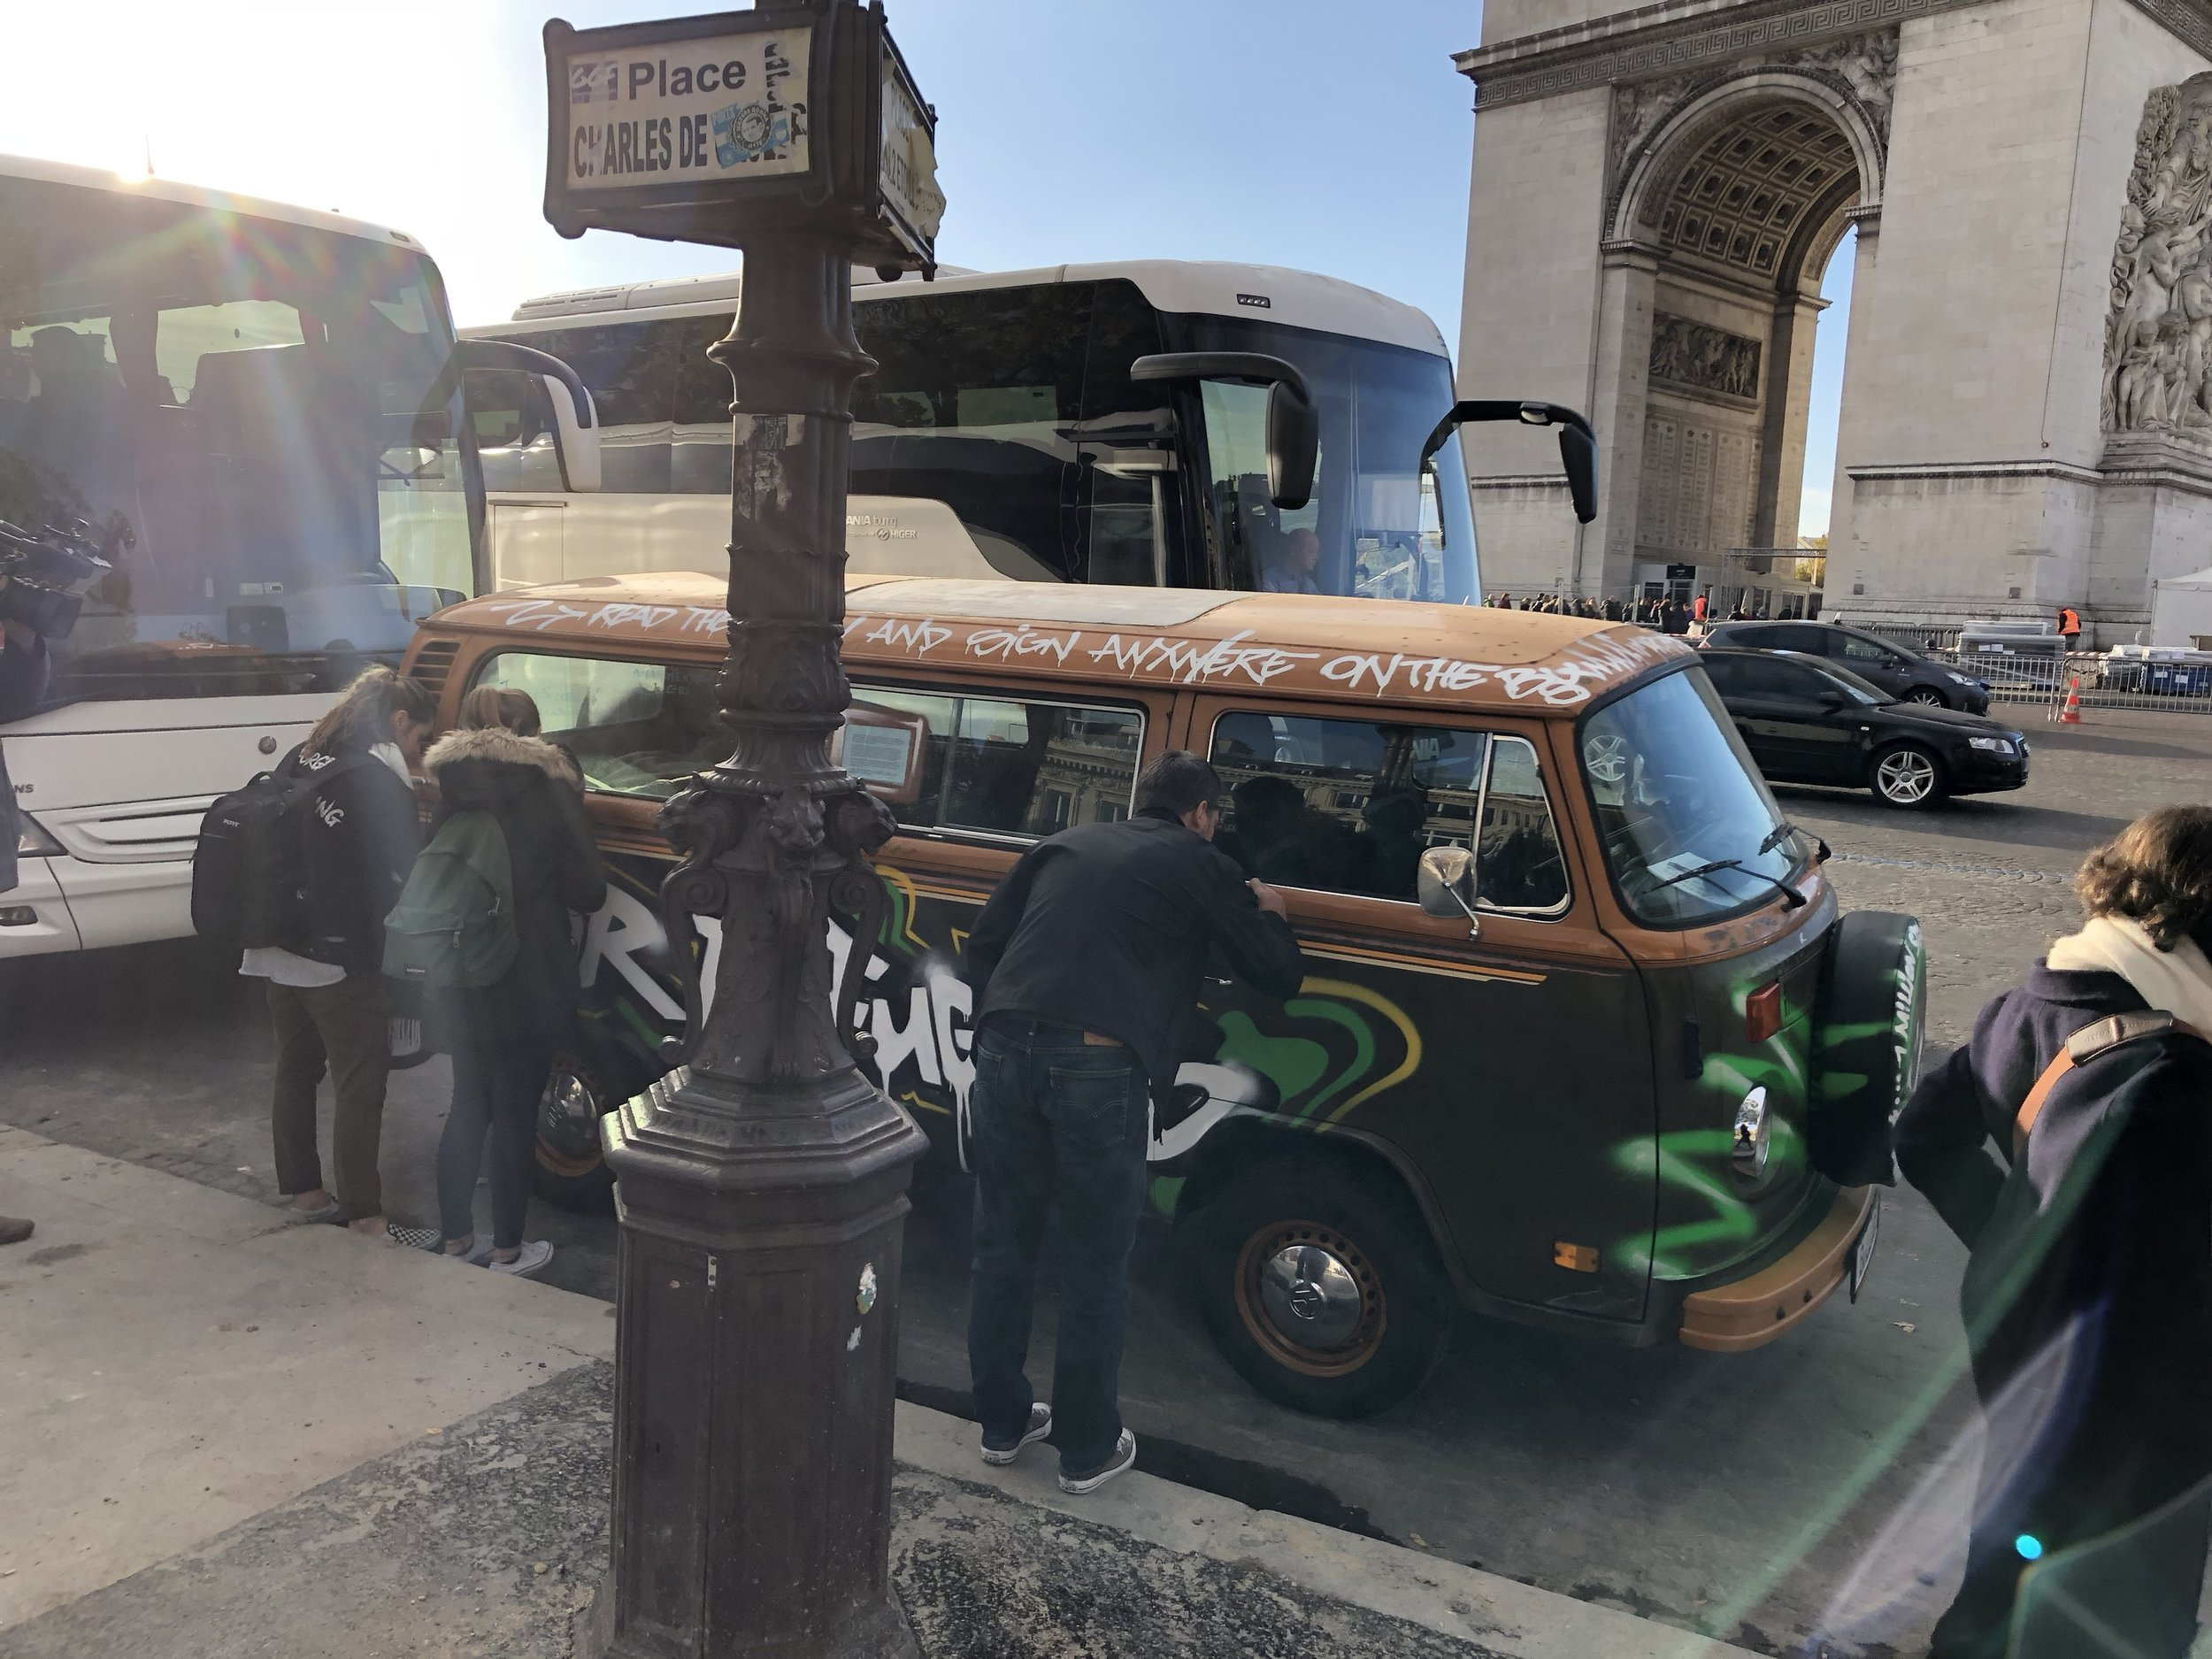 People signing vw bus outside arc de triomphe2.JPG